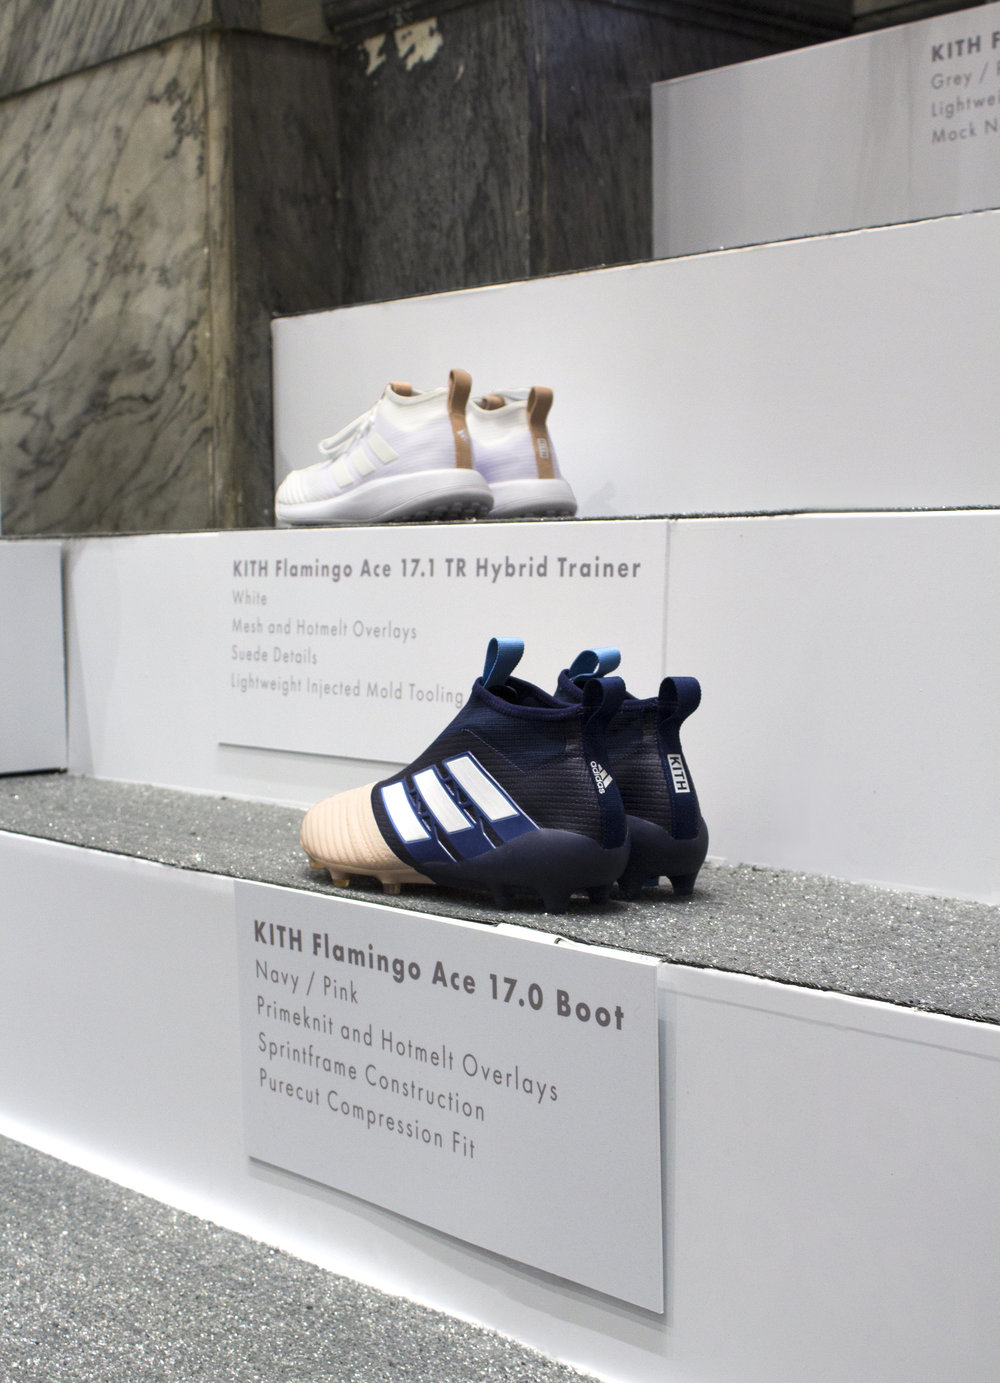 Kith's biggest initiative for 2016, the Adidas Soccer collaboration.  -  We brought to life the custom product with a rivalry story that highlighted the two imaginary teams that inspired the collection. Before we had even finished installing the lines stretched 5 blocks, with one off the largest turn outs in Kith history. All product sold out within hours of opening.